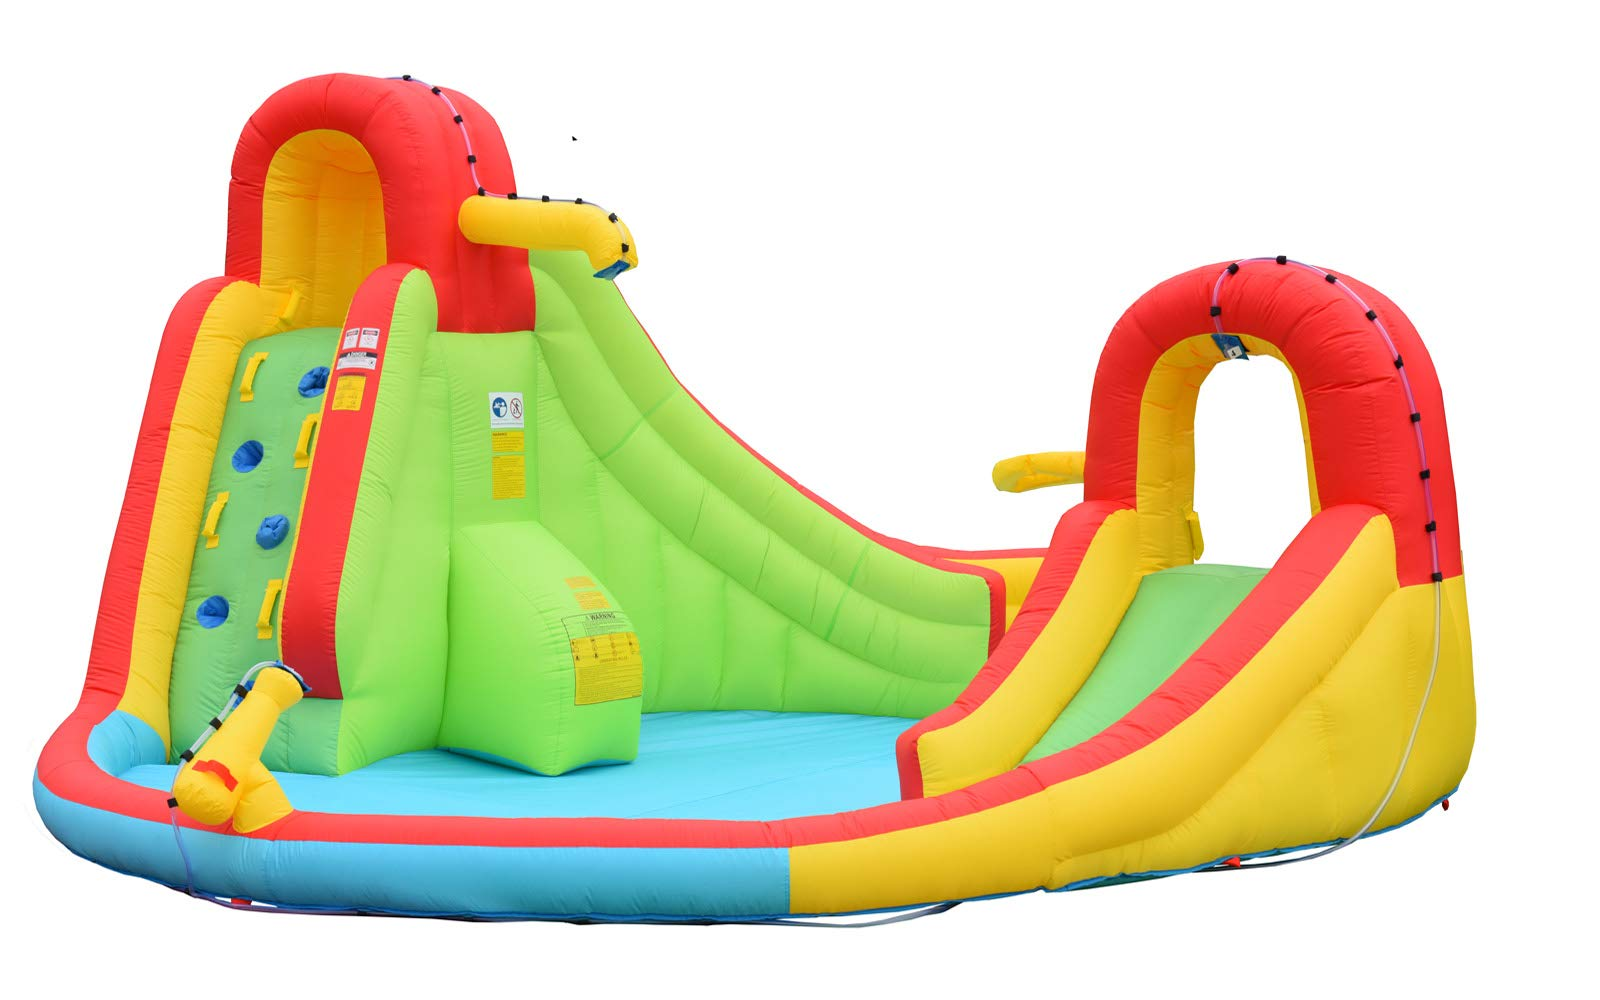 Inflatable Water Slide Well Fun Bounce House With Climbing Wall, Two Slides & Splash Pool Includes Blower Motor